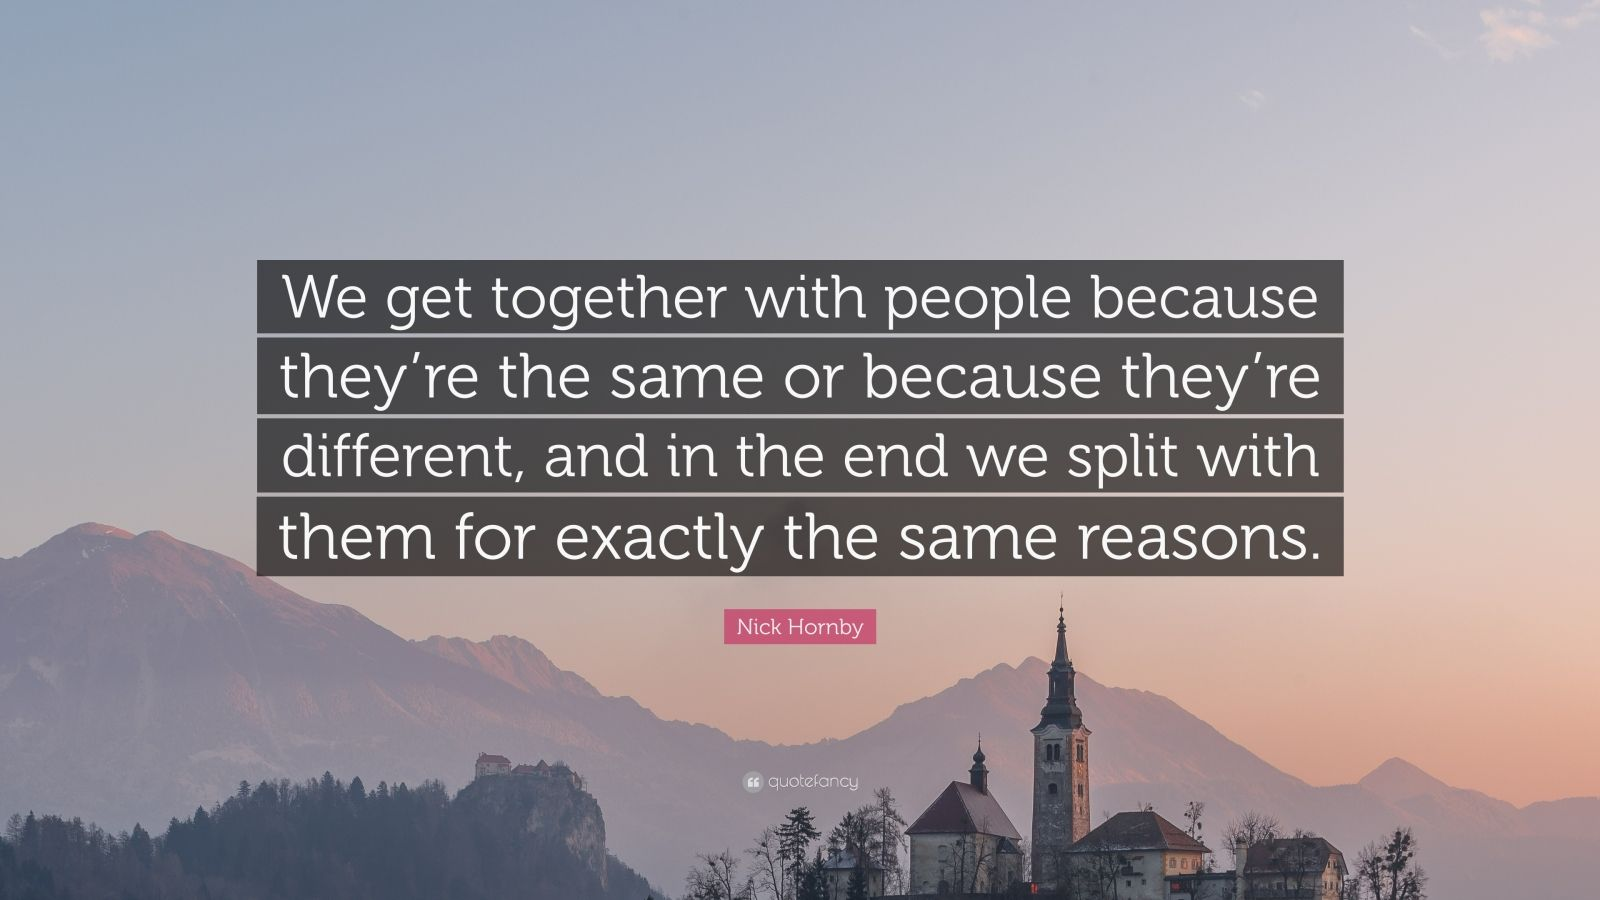 """Nick Hornby Quote: """"We get together with people because they're the same or because they're different, and in the end we split with them for exactly the same reasons."""""""